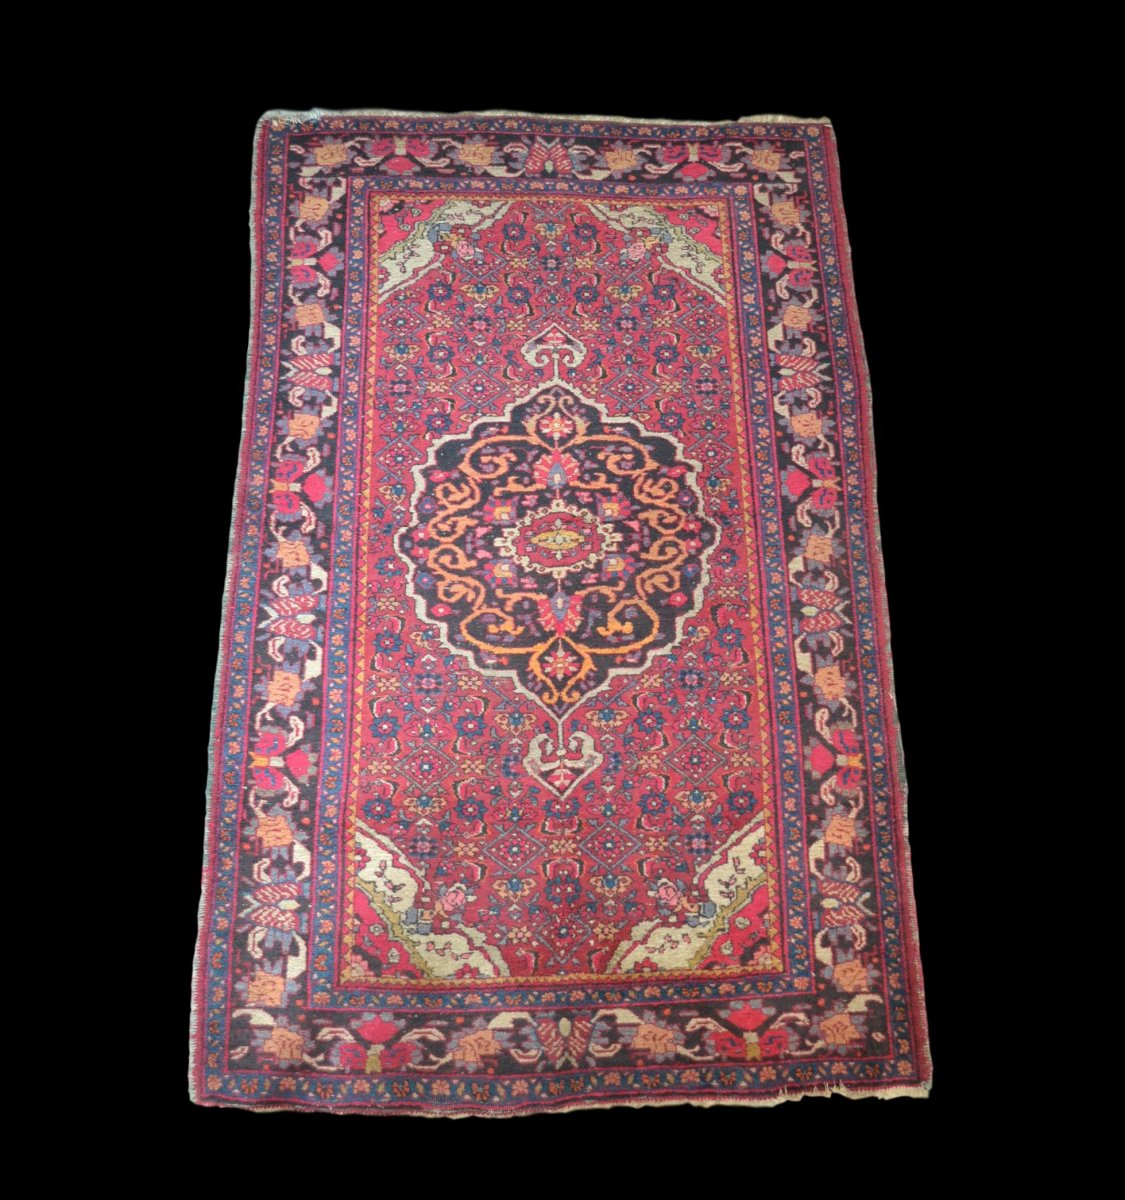 Old Persian Bidjar Rug, 127 Cm X 210 Cm, Iran, Hand-knotted Wool, Early 20th Century